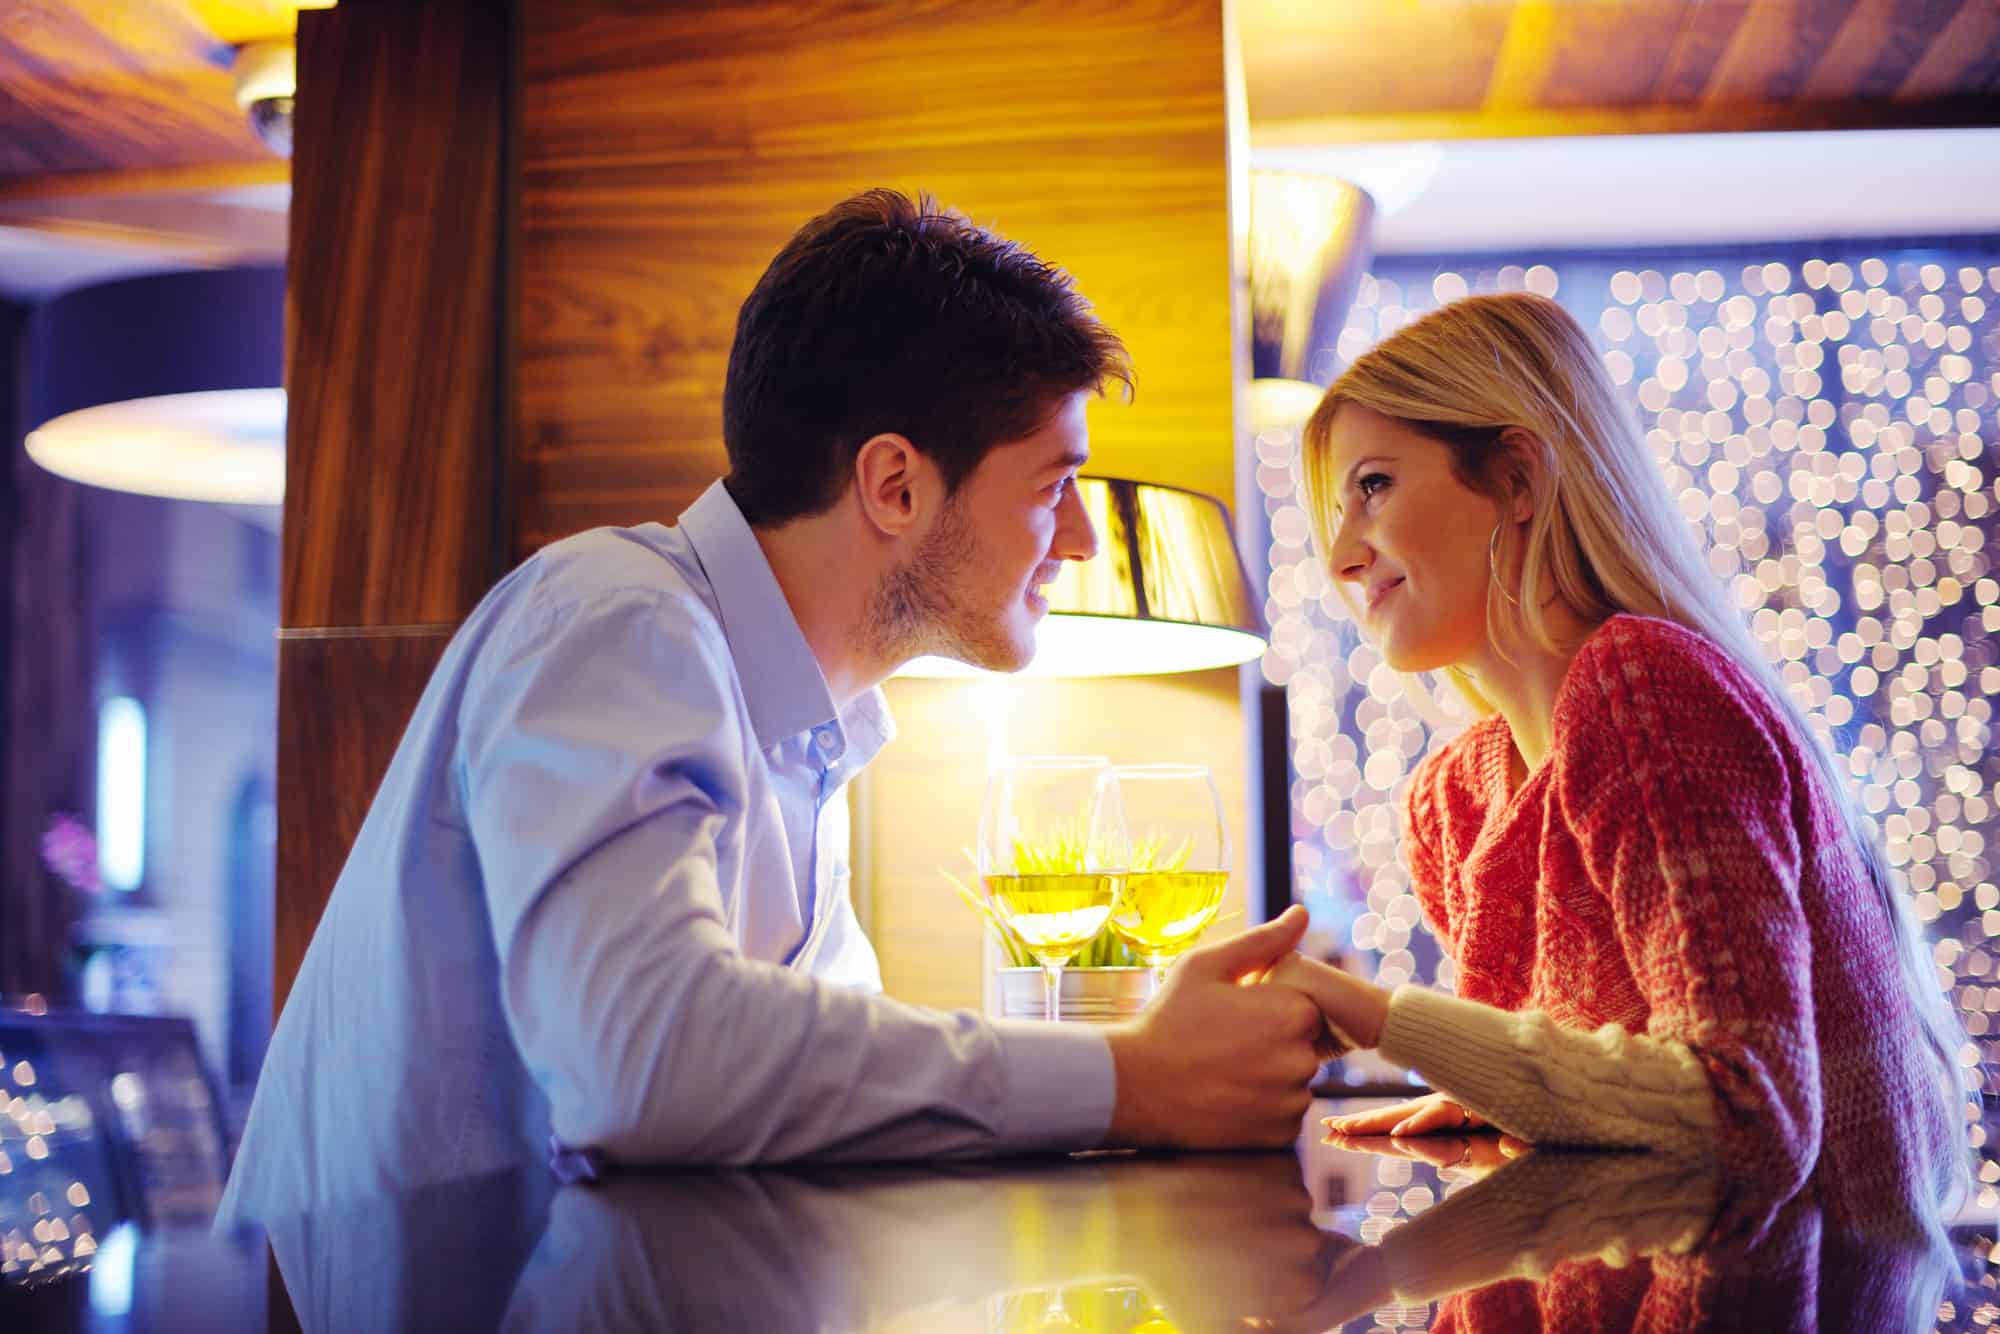 What To Do After First Date (3 Actionable Things) - AskApril